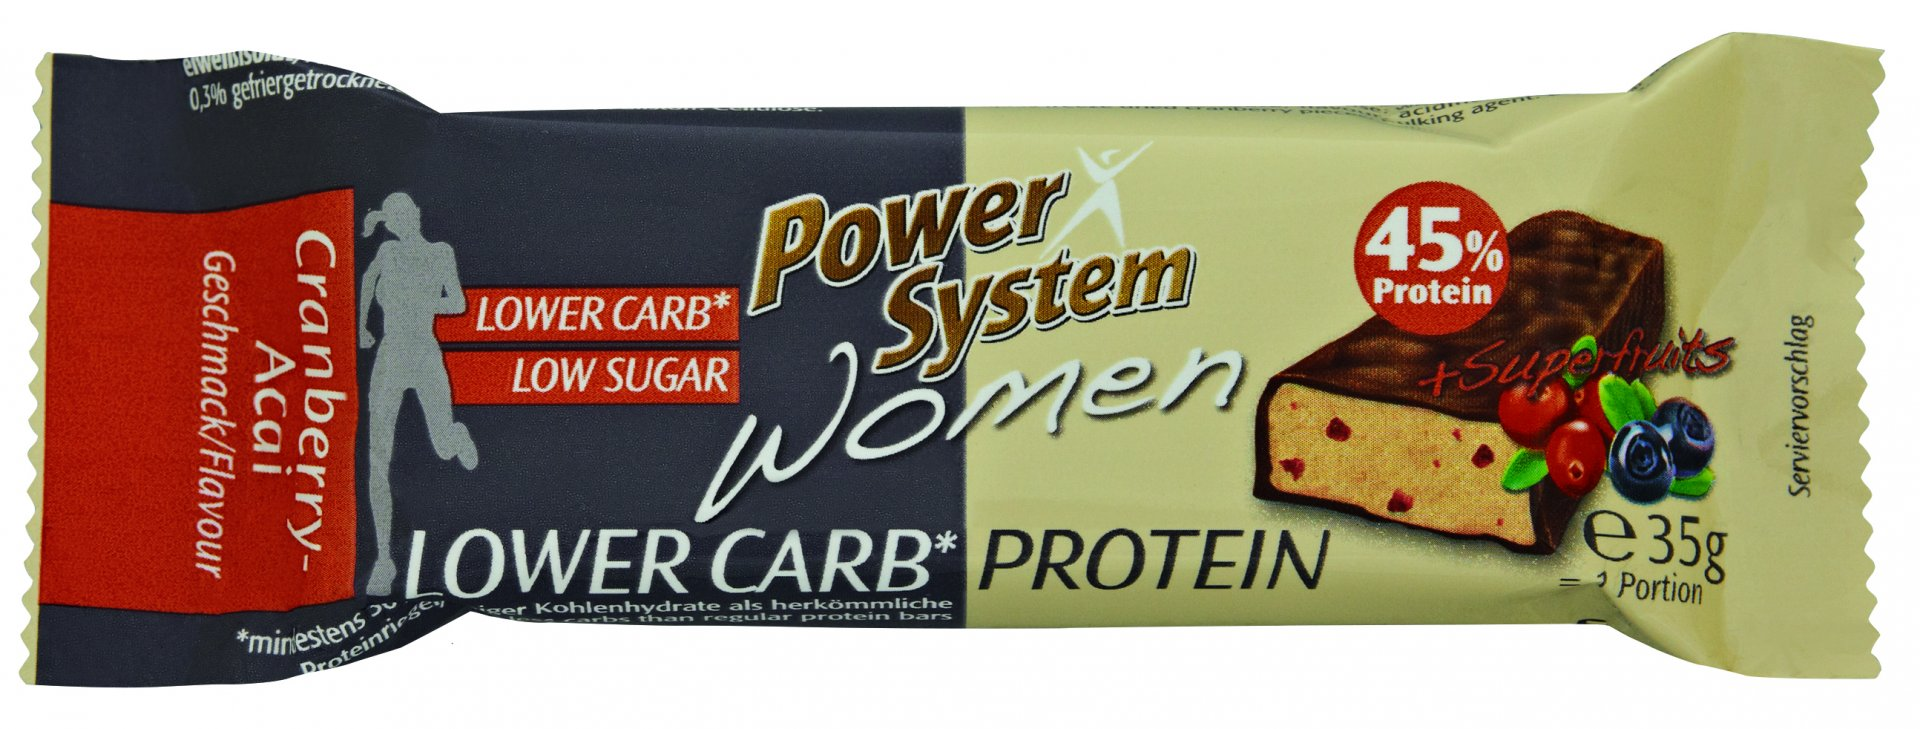 Power System Women LOWER CARB Protein Bar 45% Cranberry Acai 35g